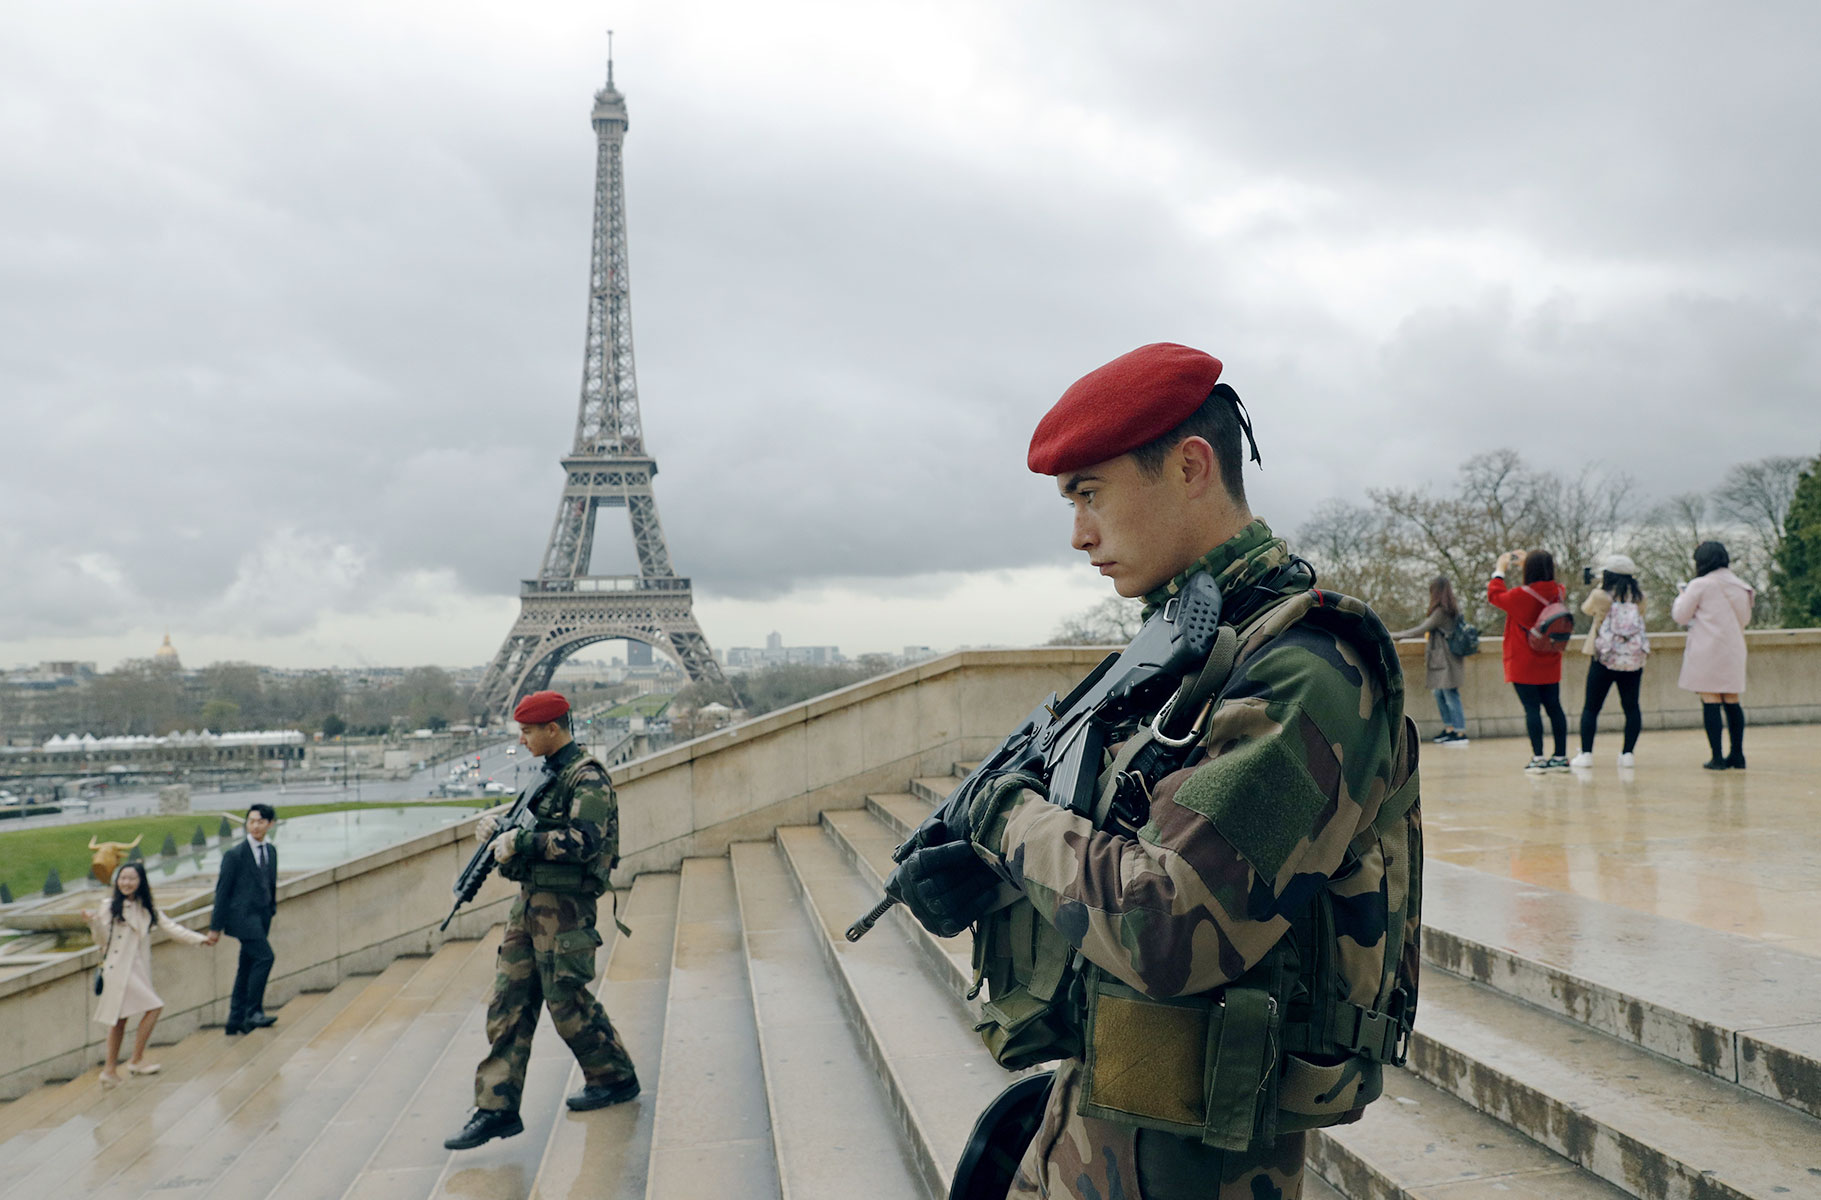 French paratroopers patrol near the Eiffel Tower on March 30 as part of a major security surge